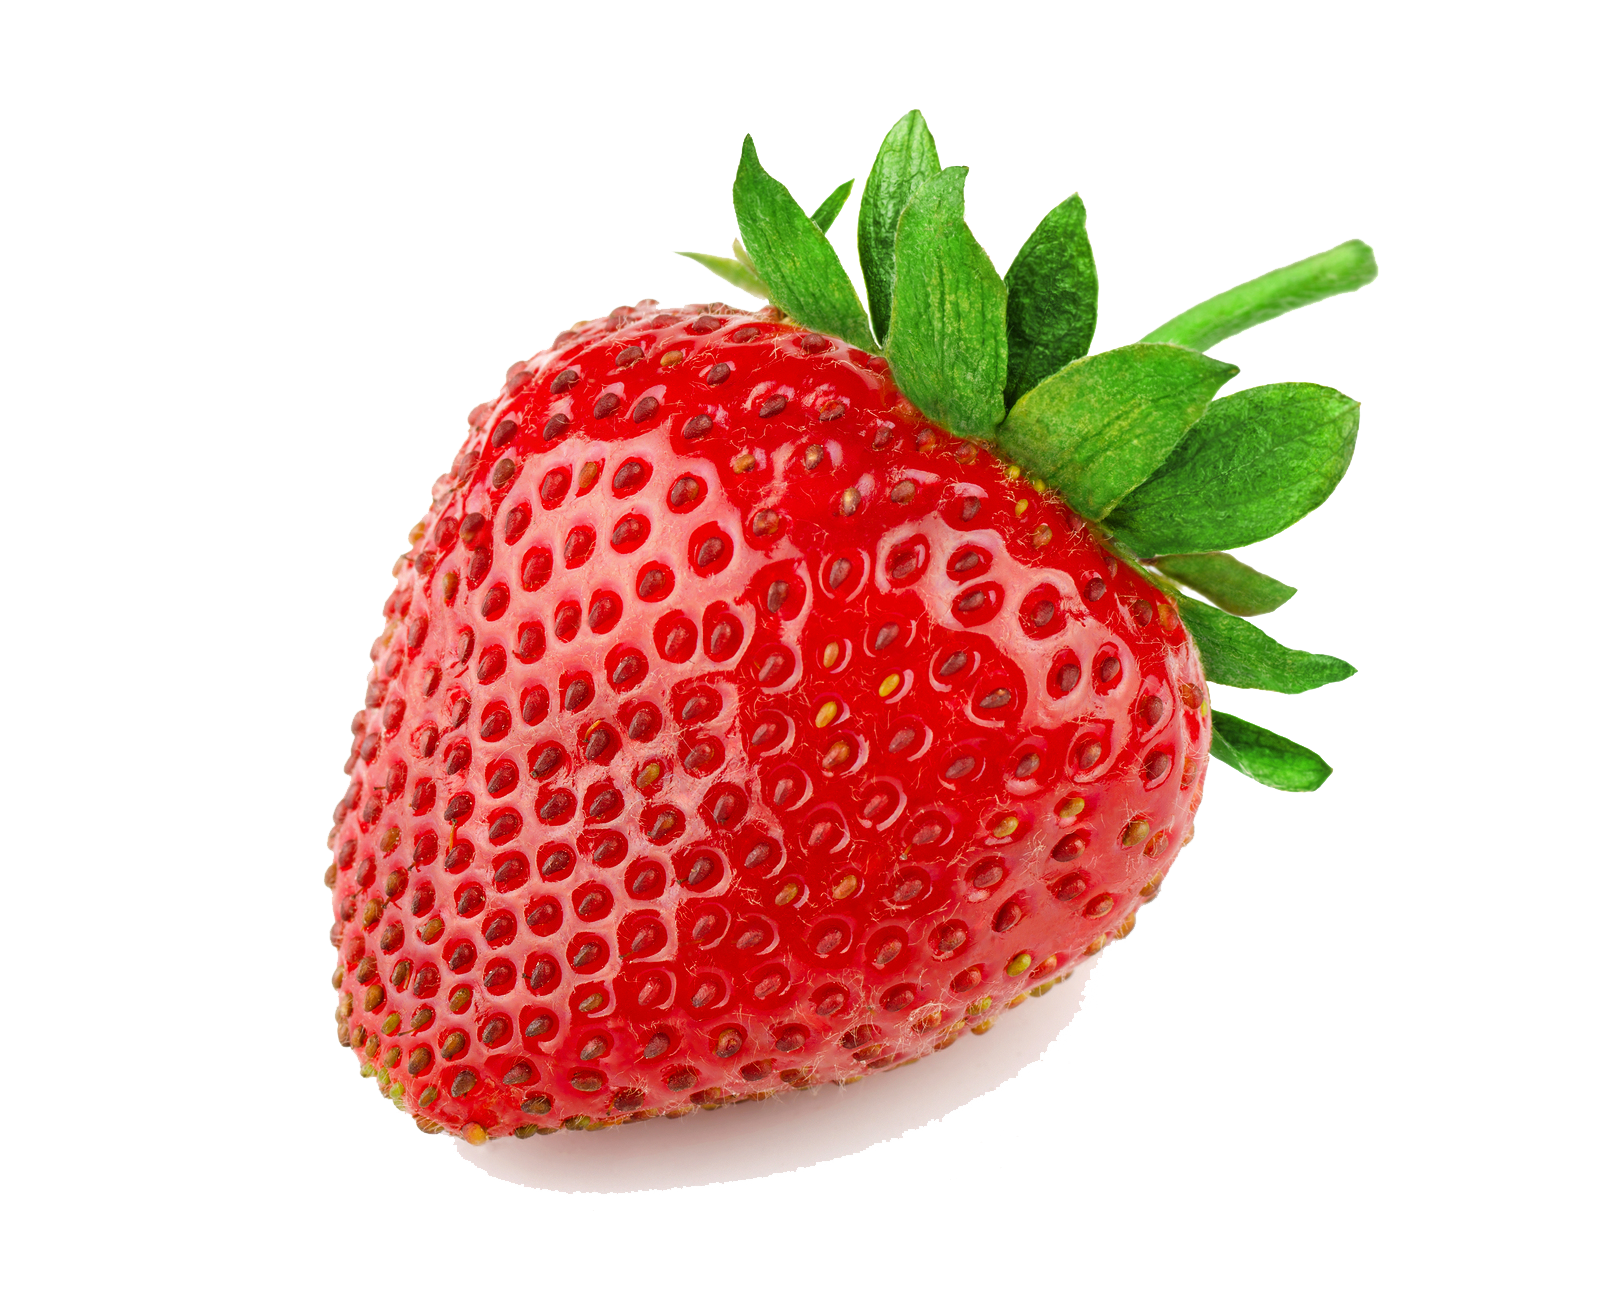 Strawberries clipart strawberry seed. Png transparent images all